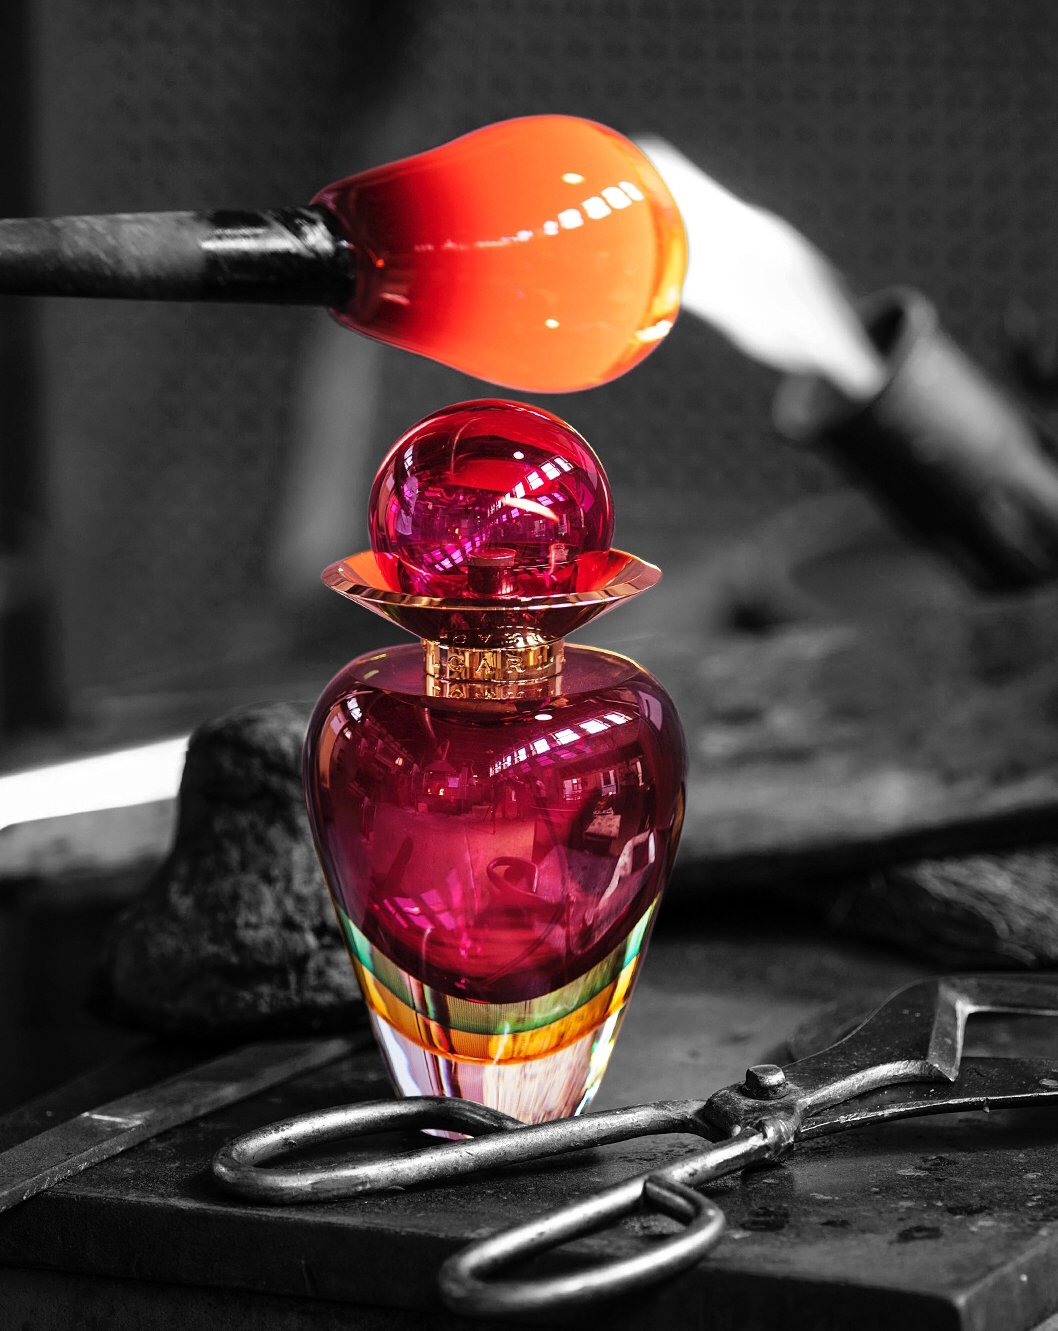 Bvlgari Le Gemme Murano Collection